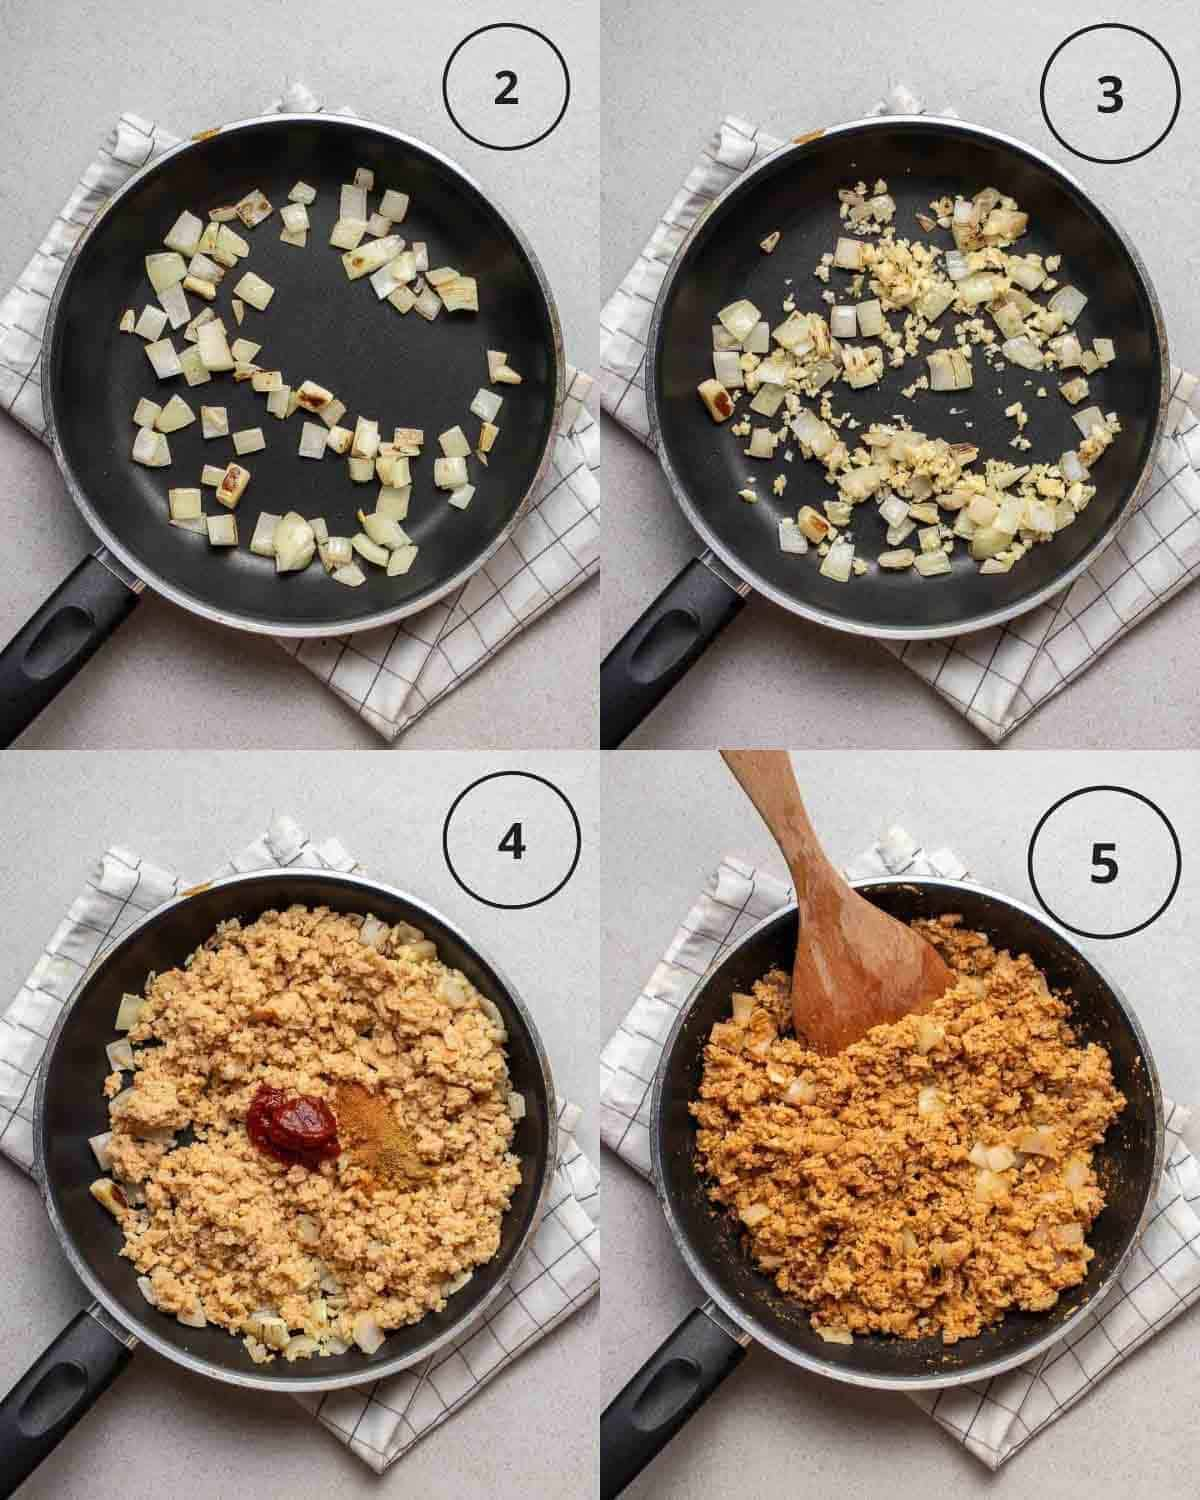 A collage showing sauteing onion, adding garlic and adding TVP and spices in a pan.